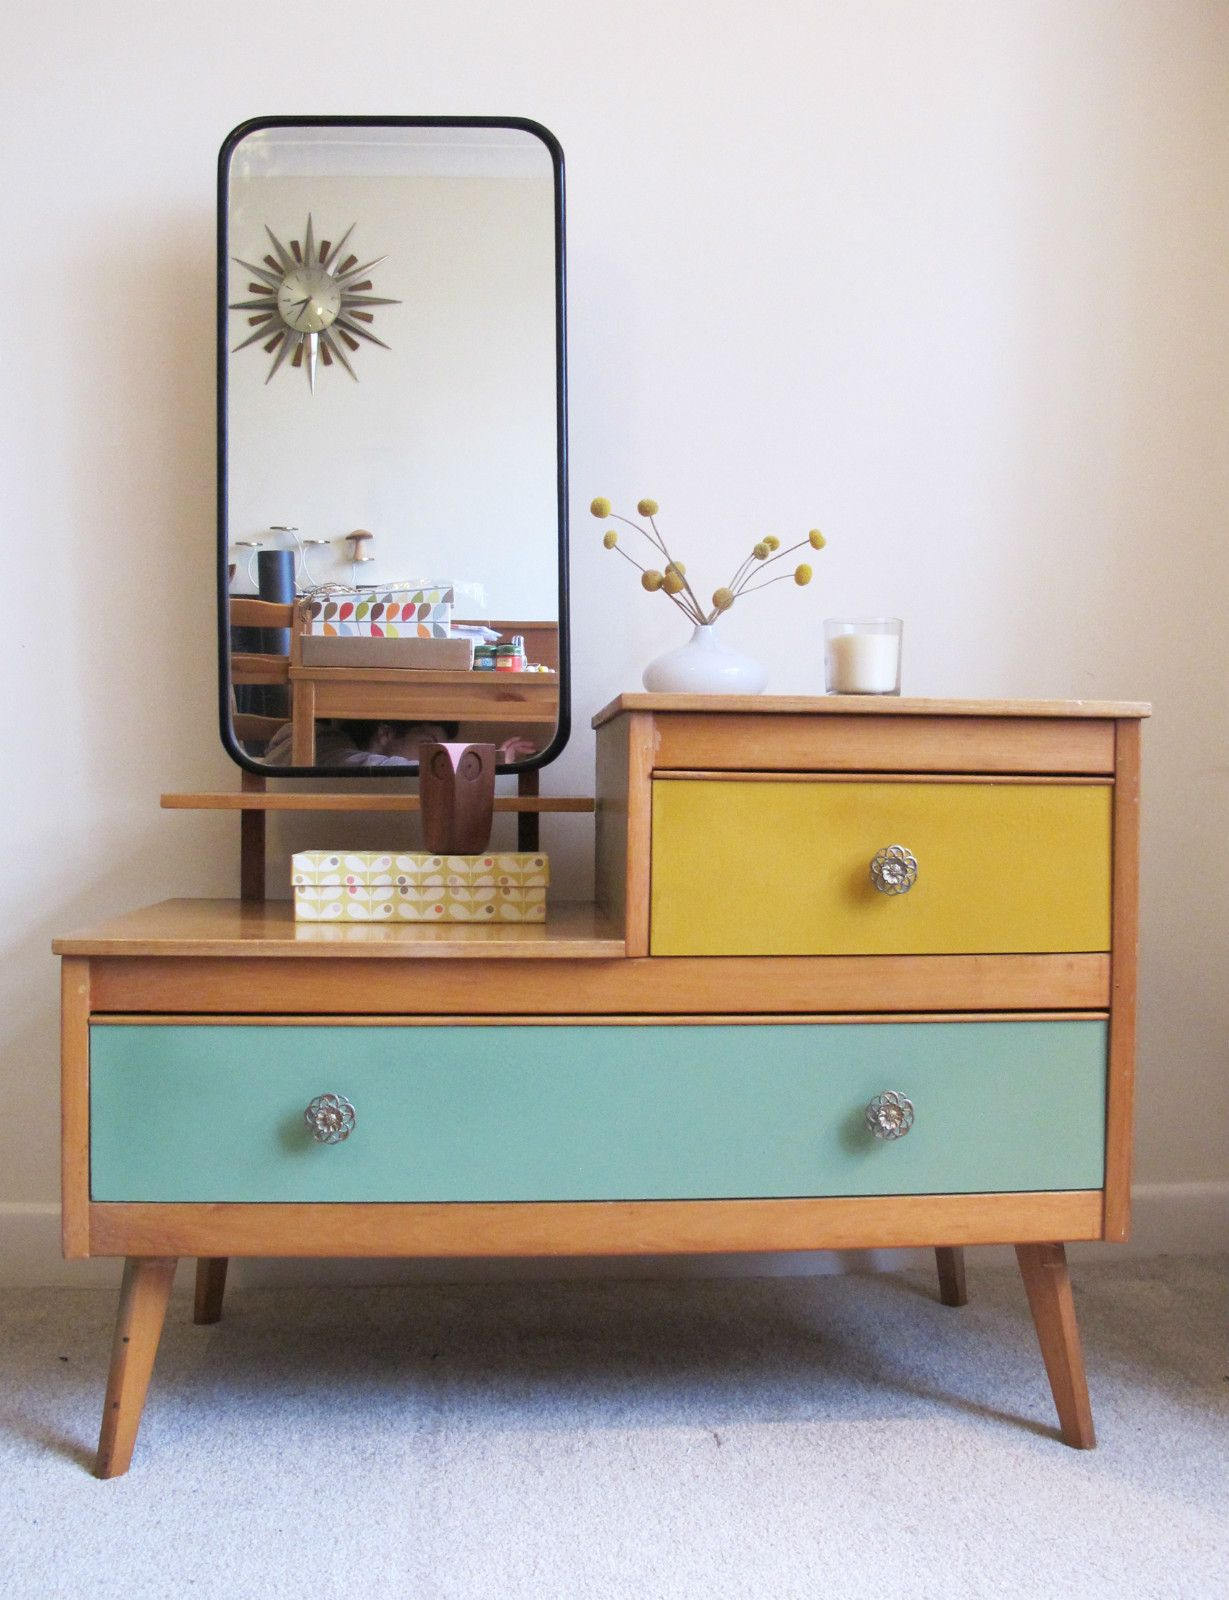 Fantastic Retro Wooden Dressing Table Someday I Want My Living Room To Look Like